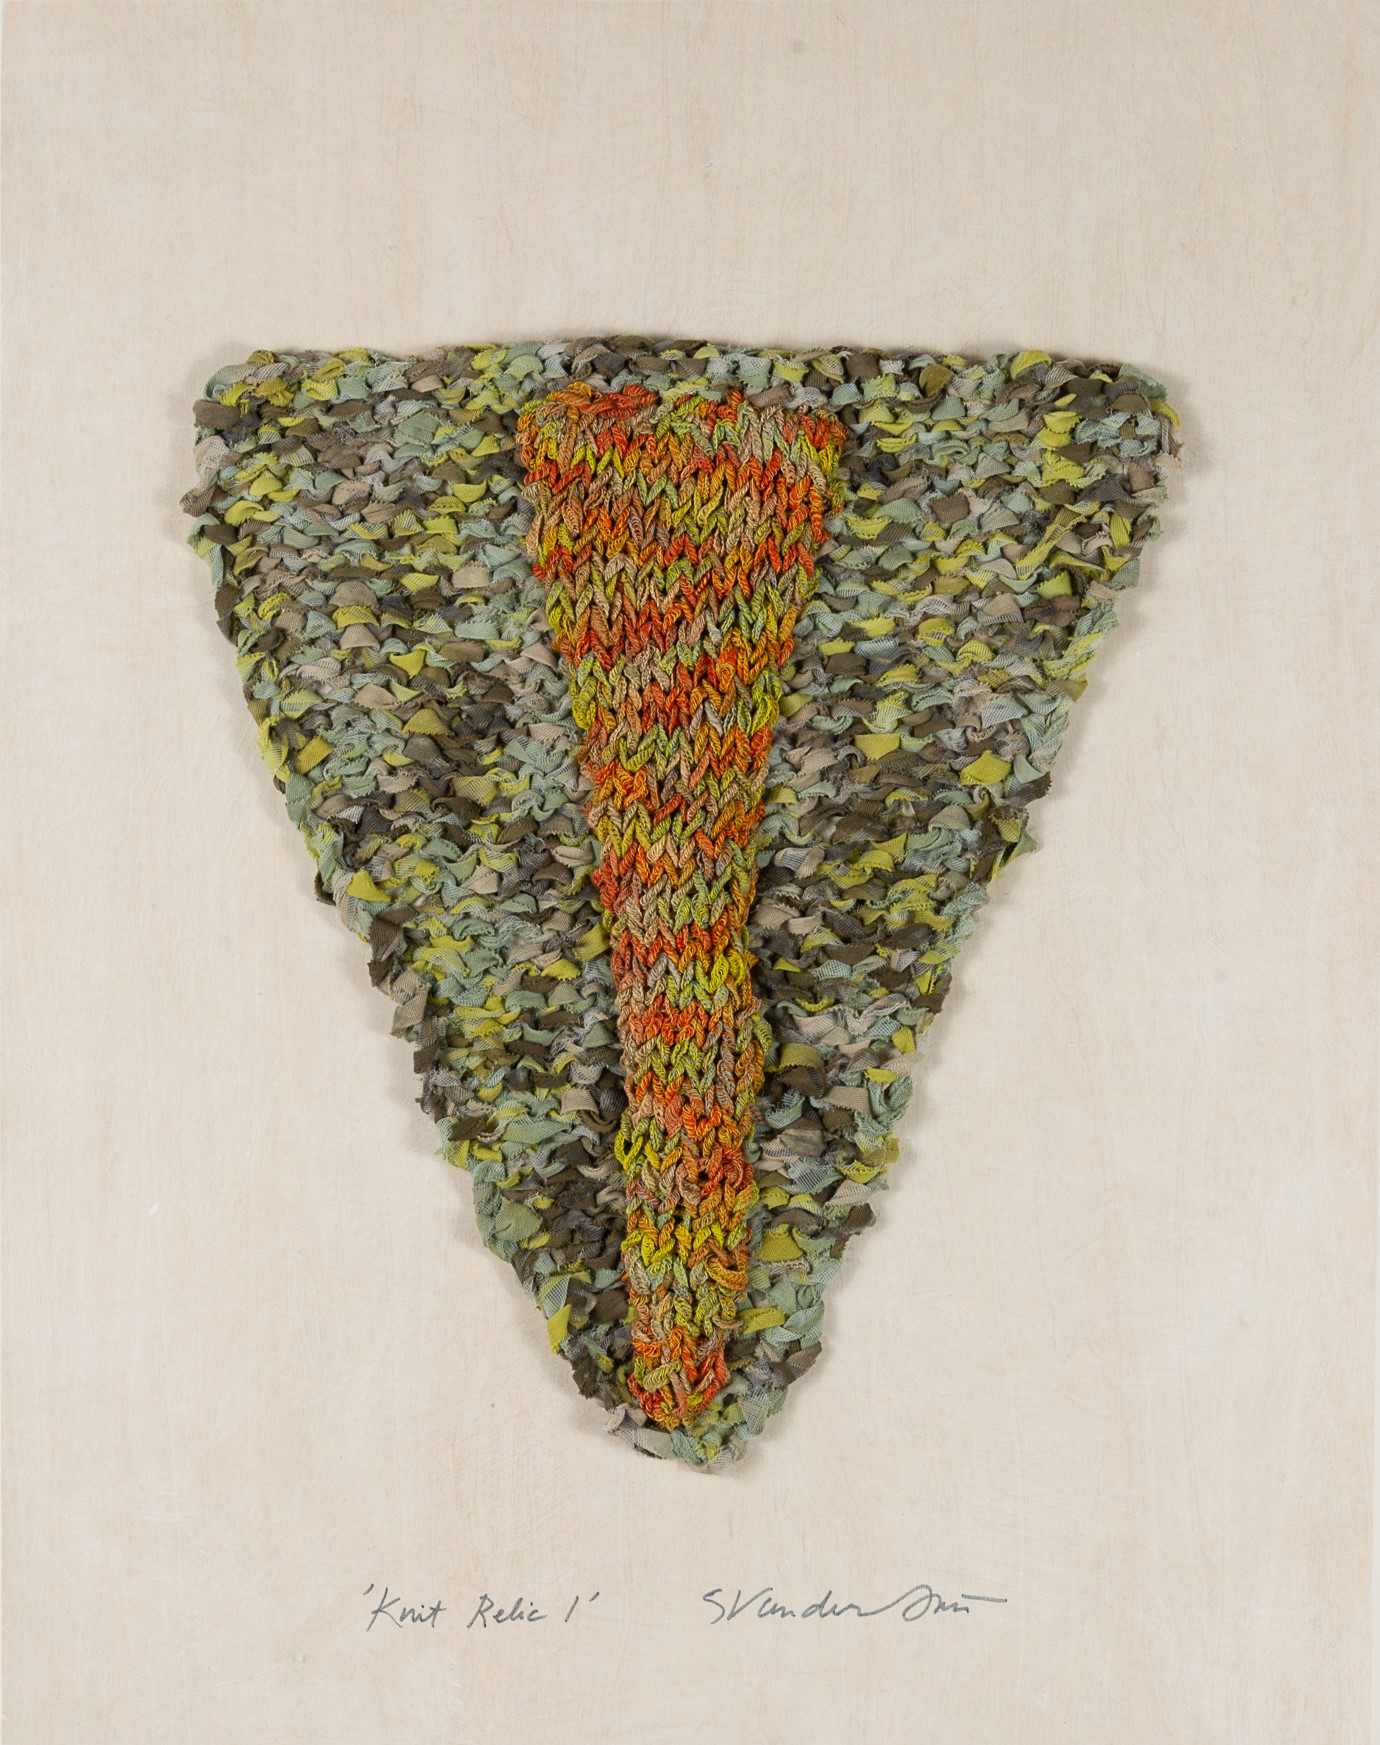 """Knit Relic 1 (Green/Orange),"" Handknit by Sylvia Vander Sluis - one of three fiber works at Attleboro Art Museum"